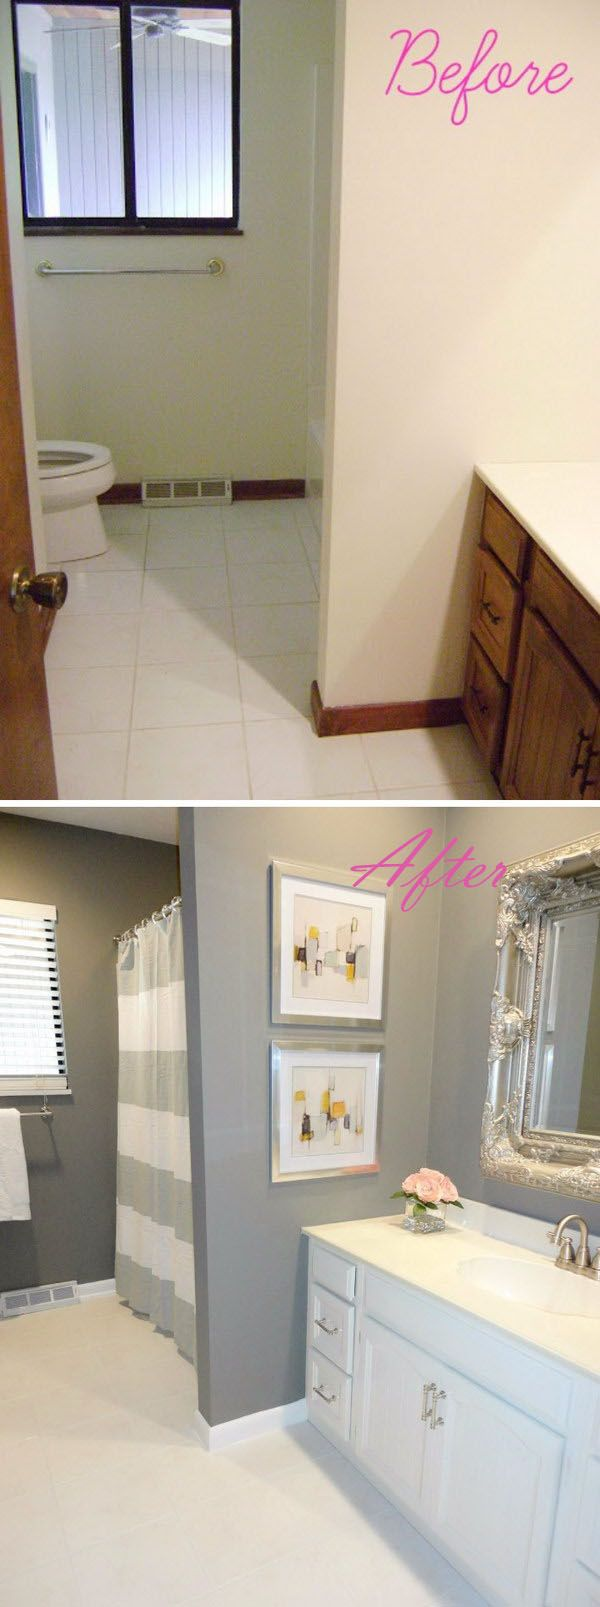 Before And After 20 Awesome Bathroom Makeovers Diy Bathroom Remodel Home Remodeling Bathrooms Remodel